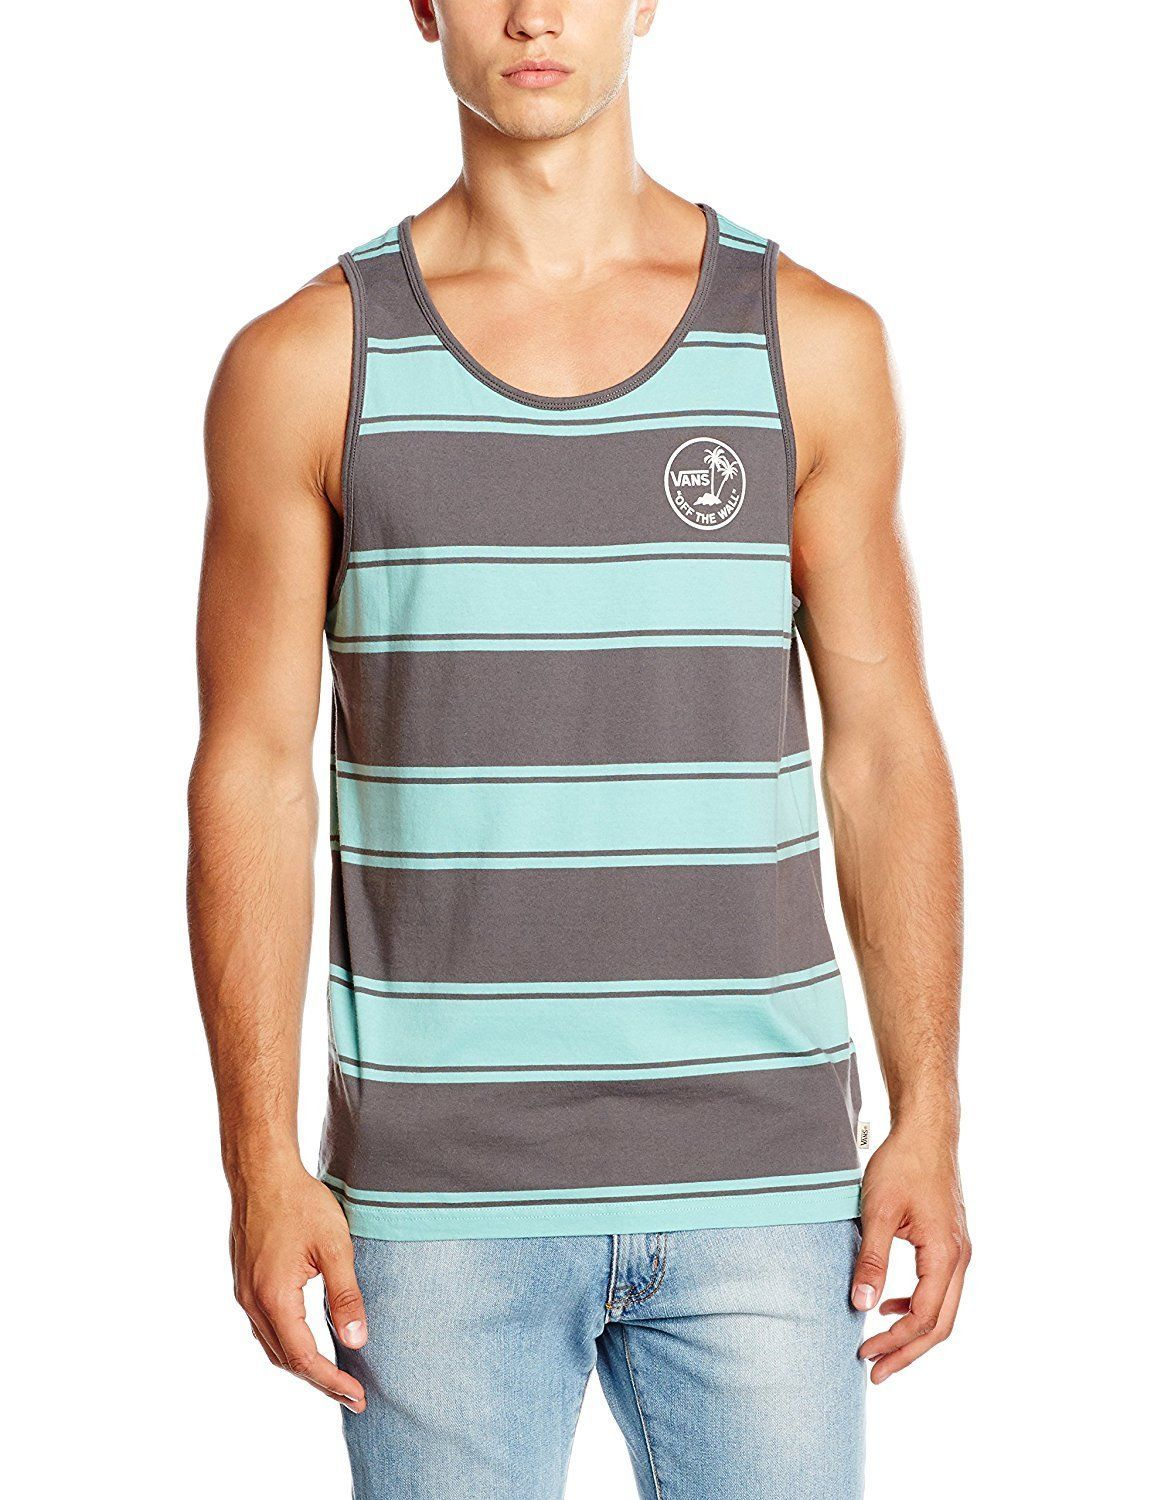 e81c831b46fcf Vans Off The Wall Bidwell Tank Top Men s and 29 similar items. S l1600